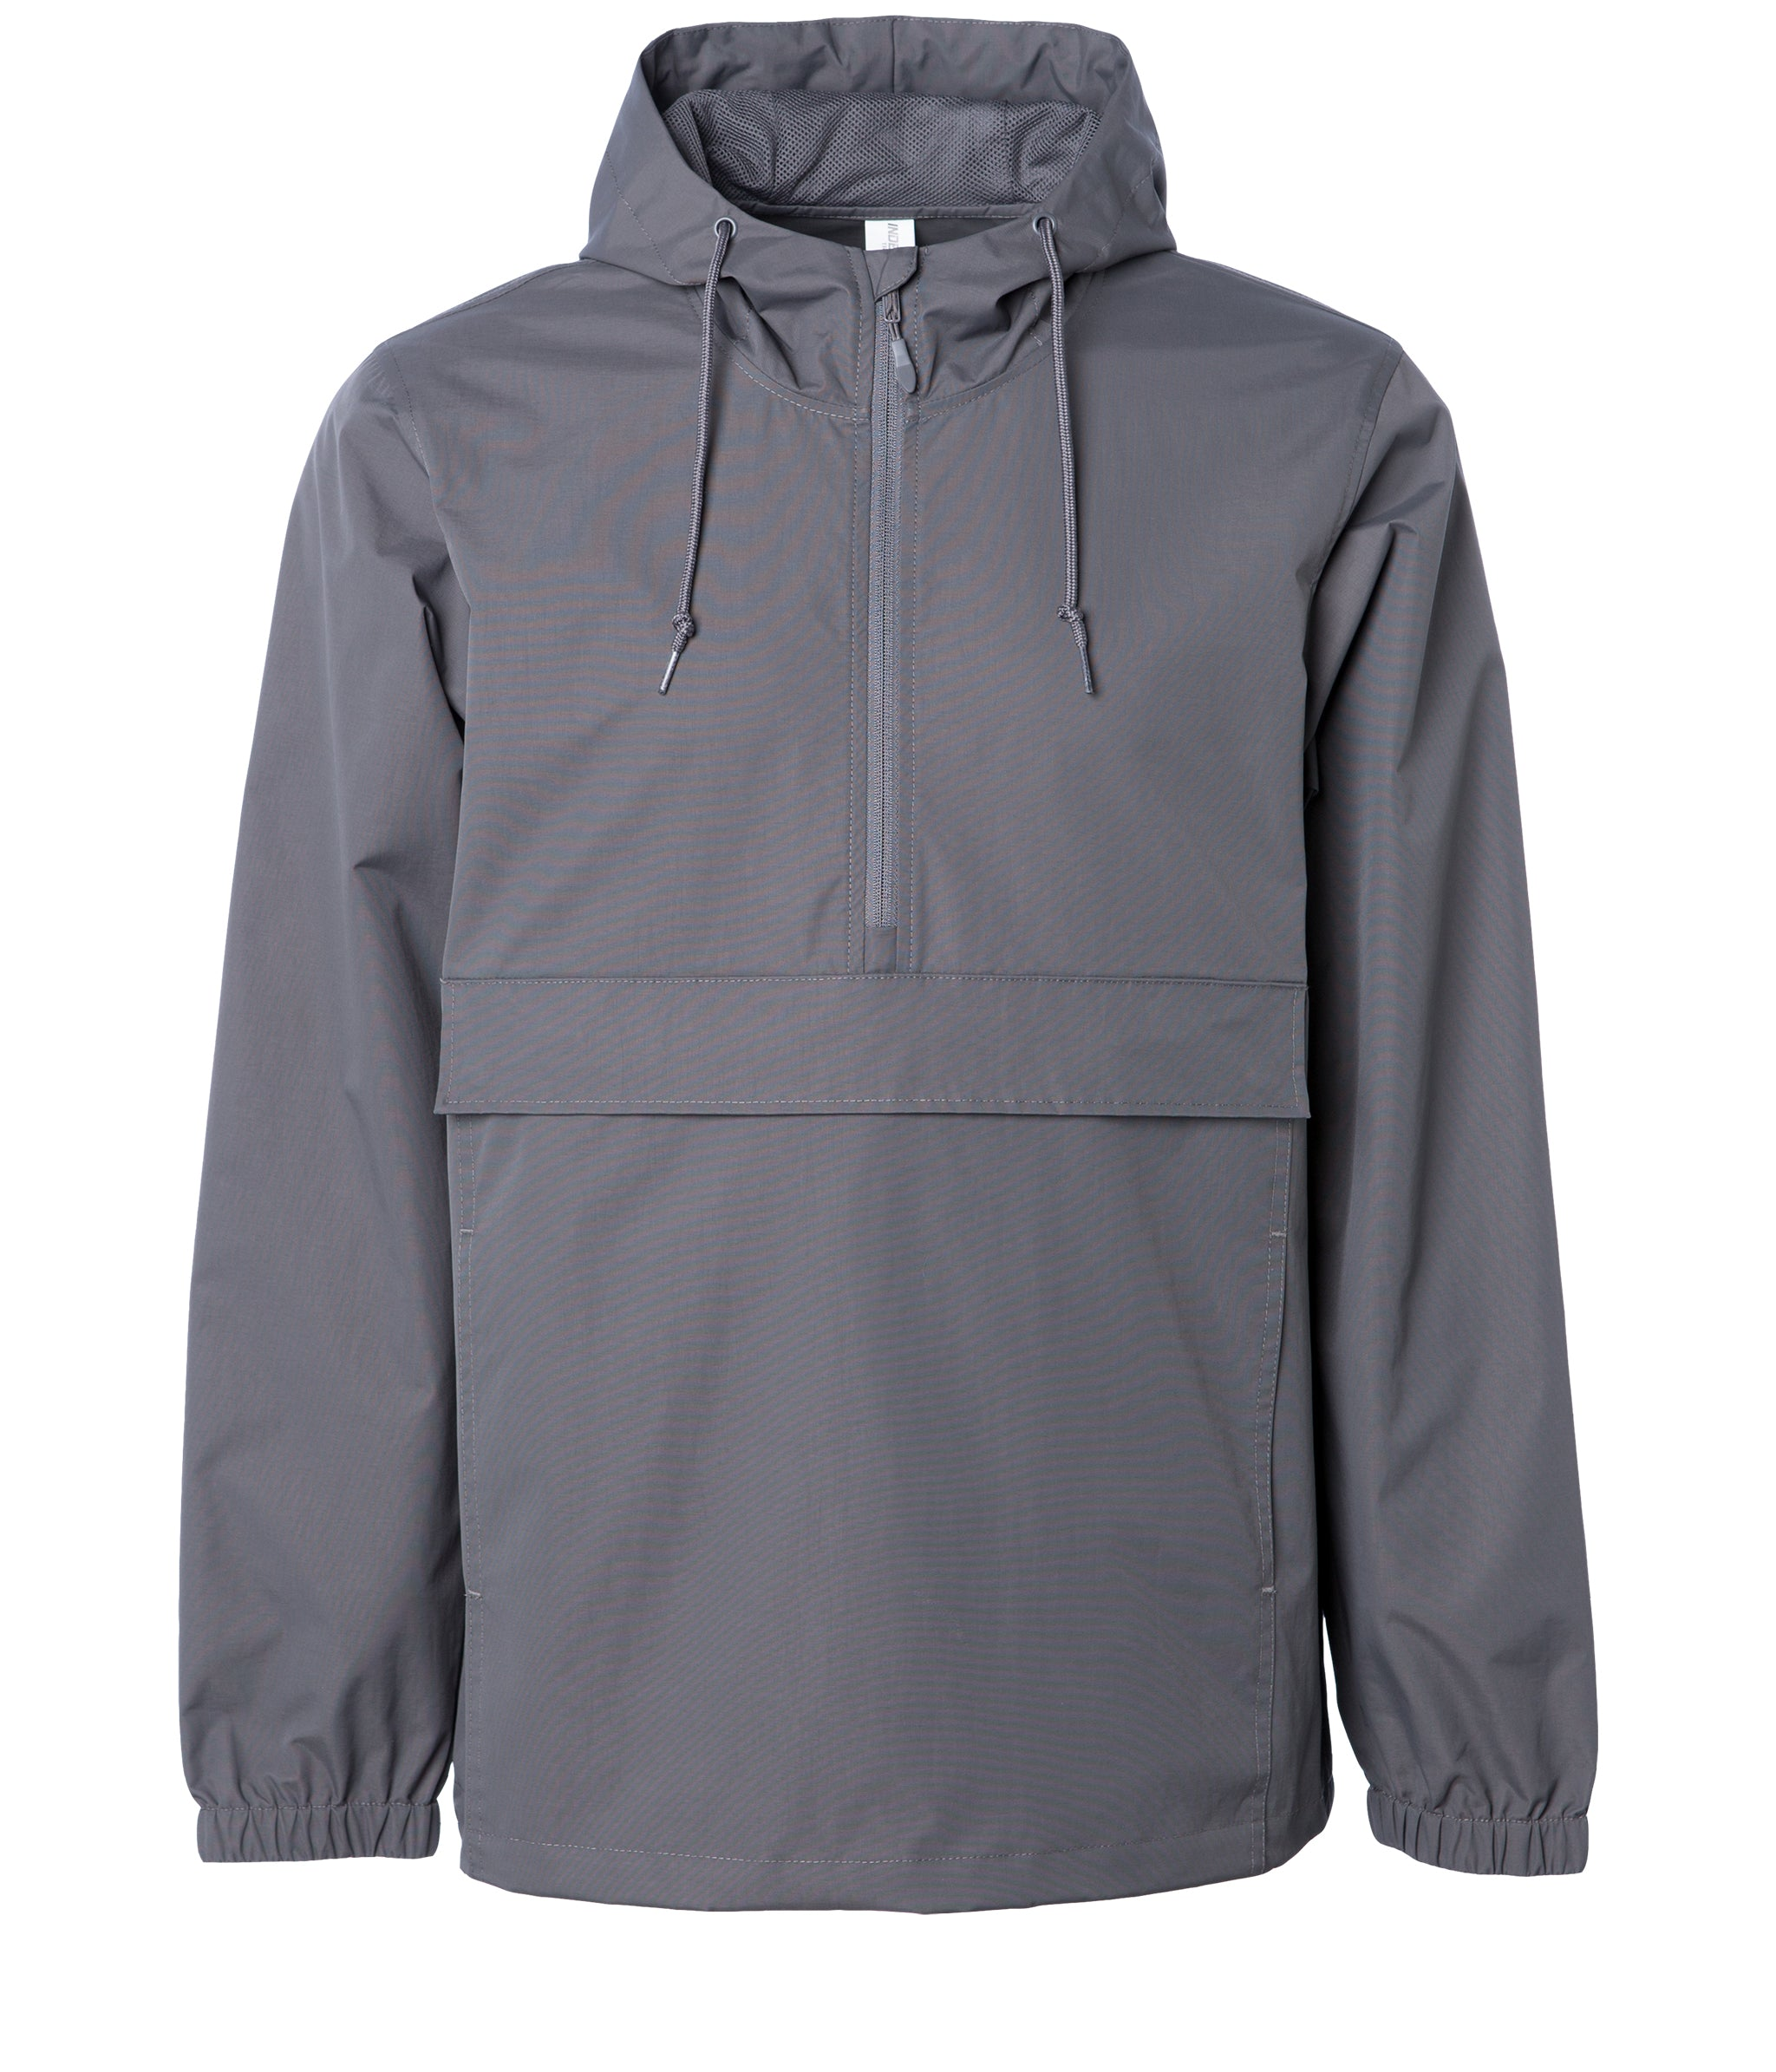 Rain Coat Adult Water-Resistant Pullover Jacket in A Pocket